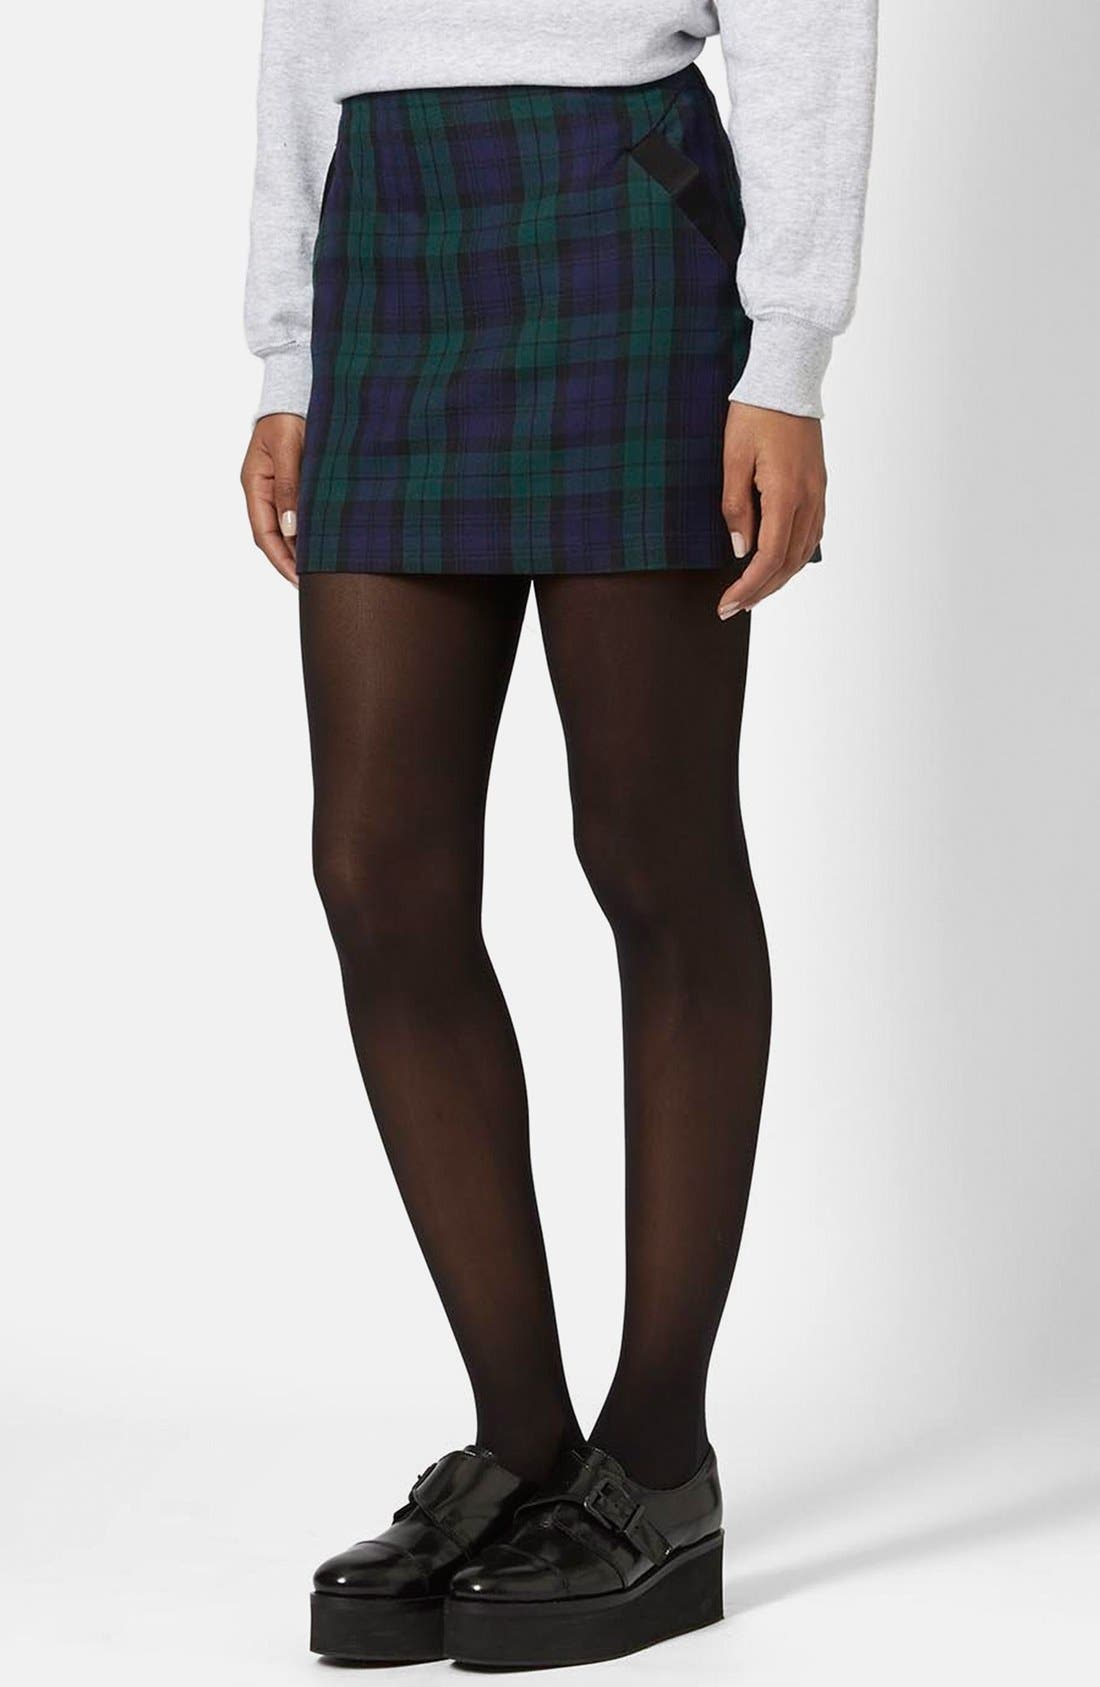 Alternate Image 1 Selected - Topshop Plaid Miniskirt